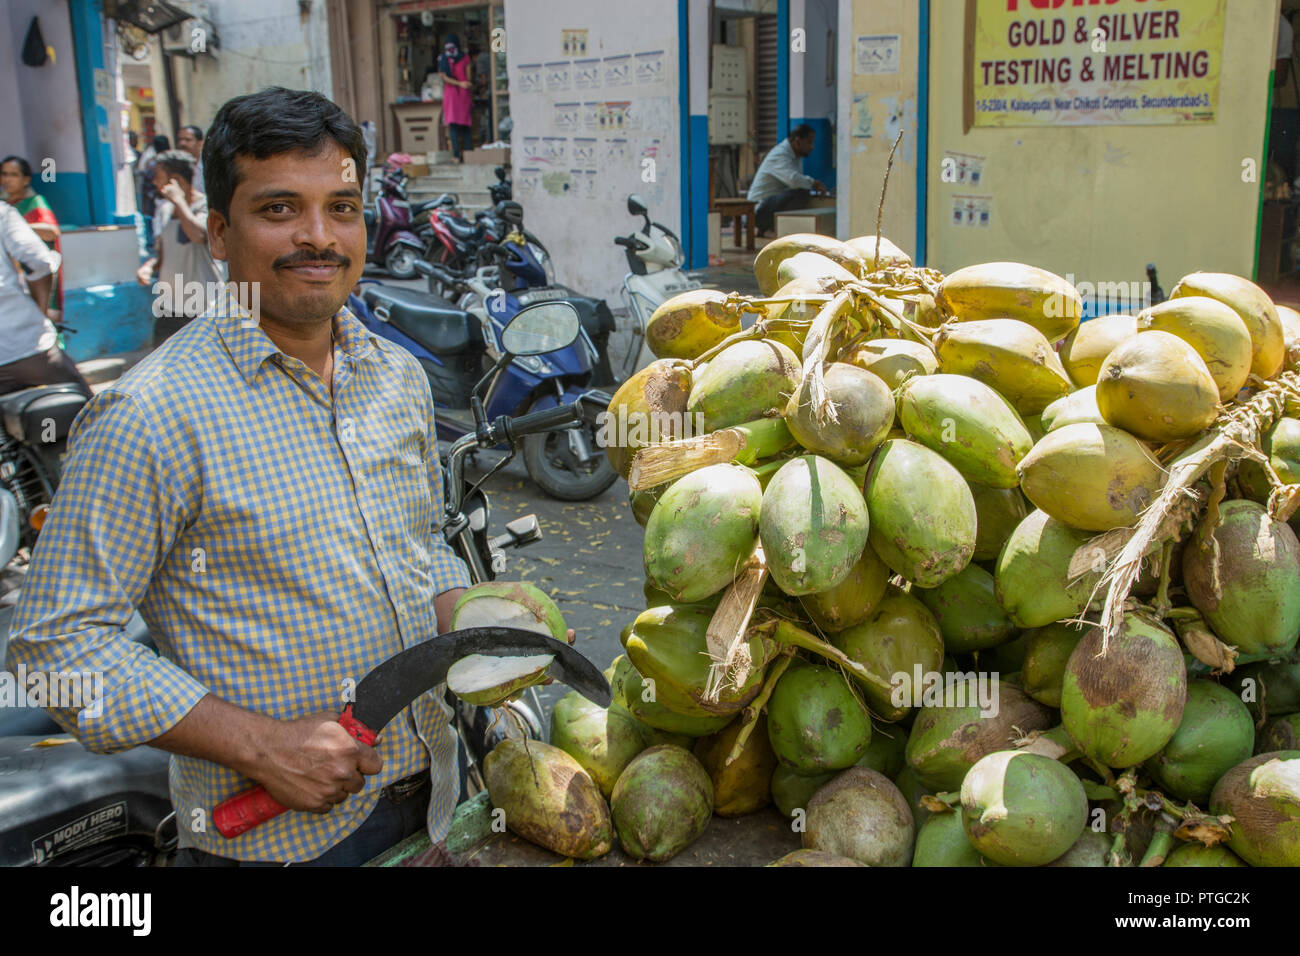 Coconut seller at an Indian Market. Photographed in Ahmedabad, Gujarat, India - Stock Image